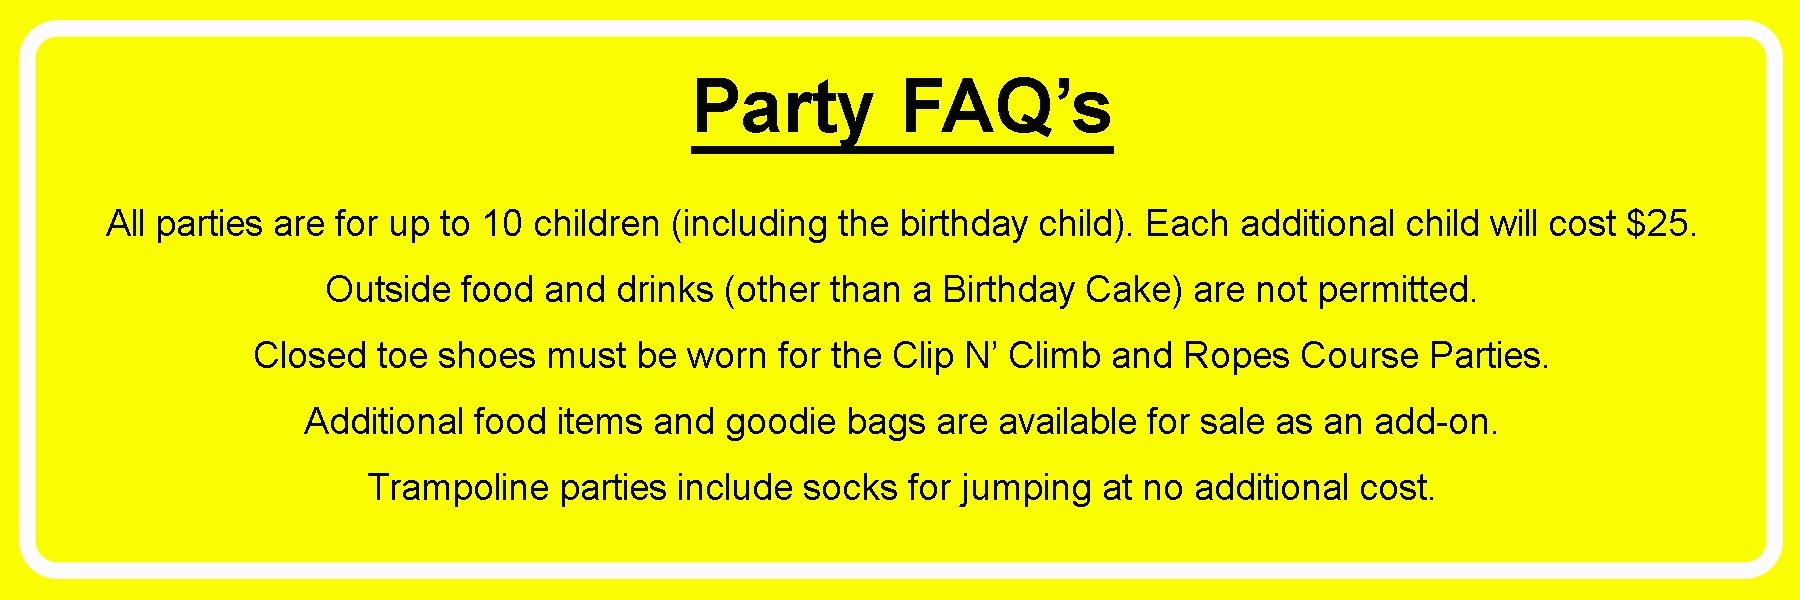 Party FAQs